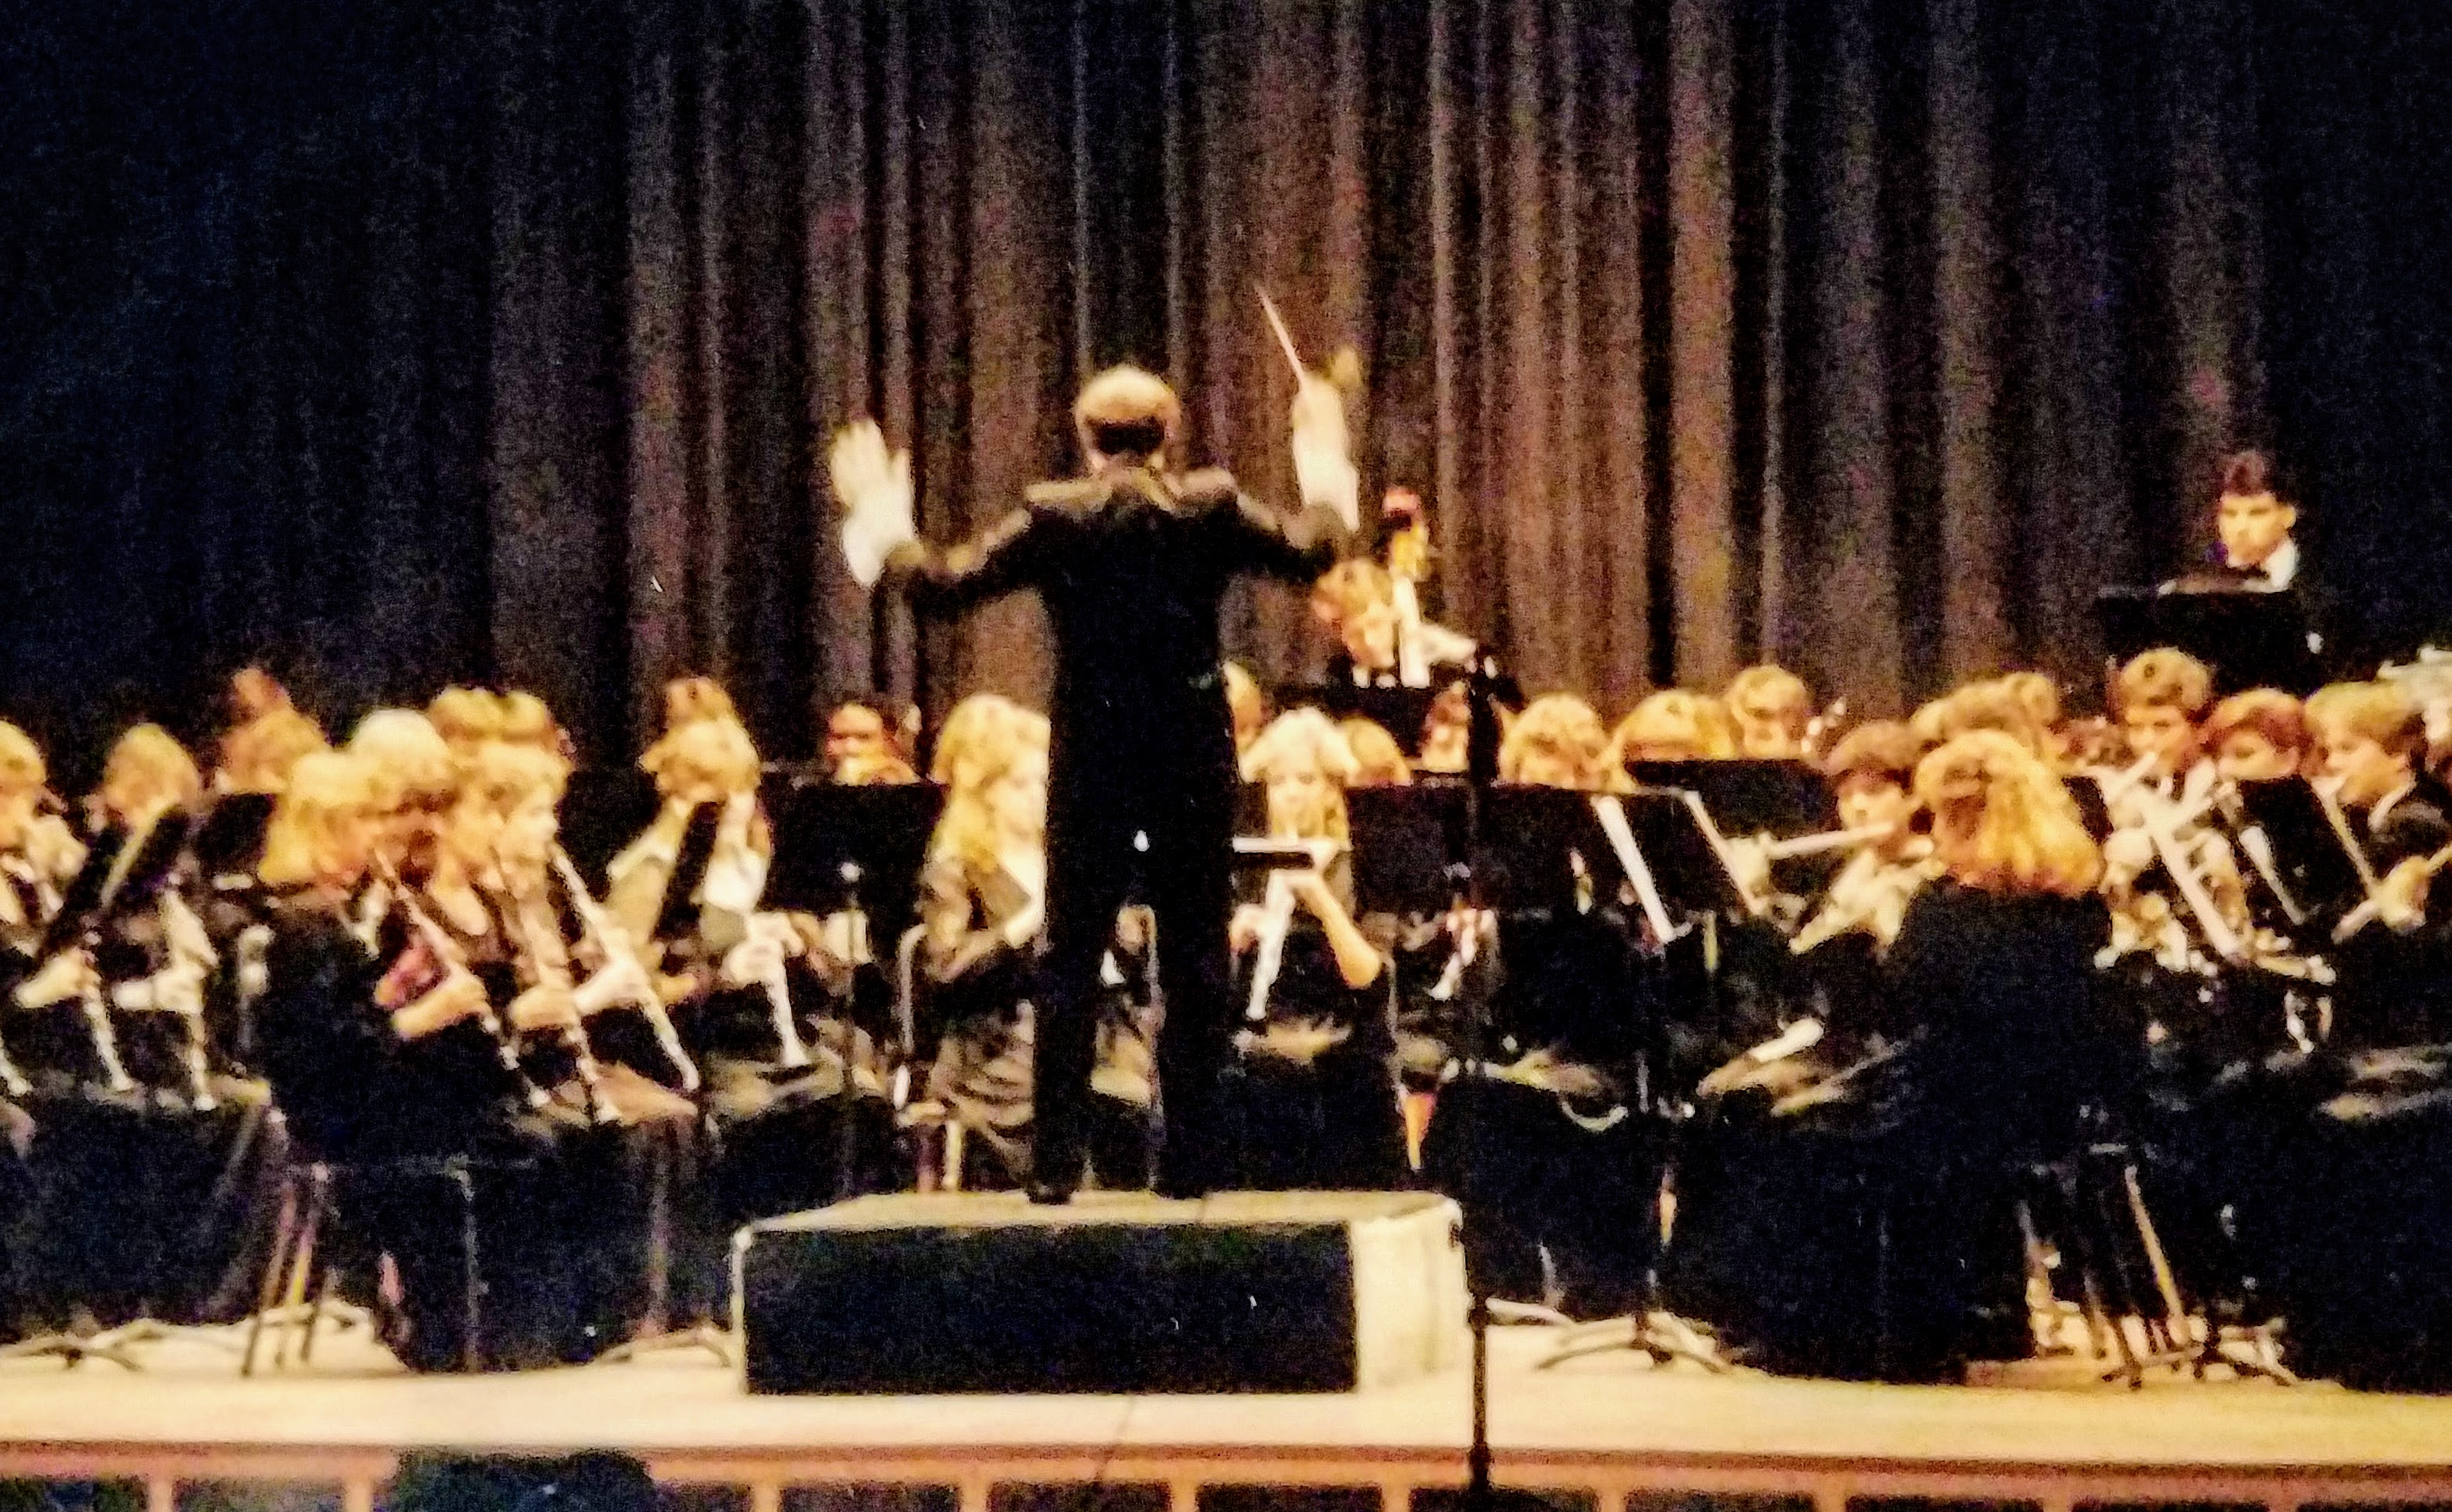 Mr. Nail conducting